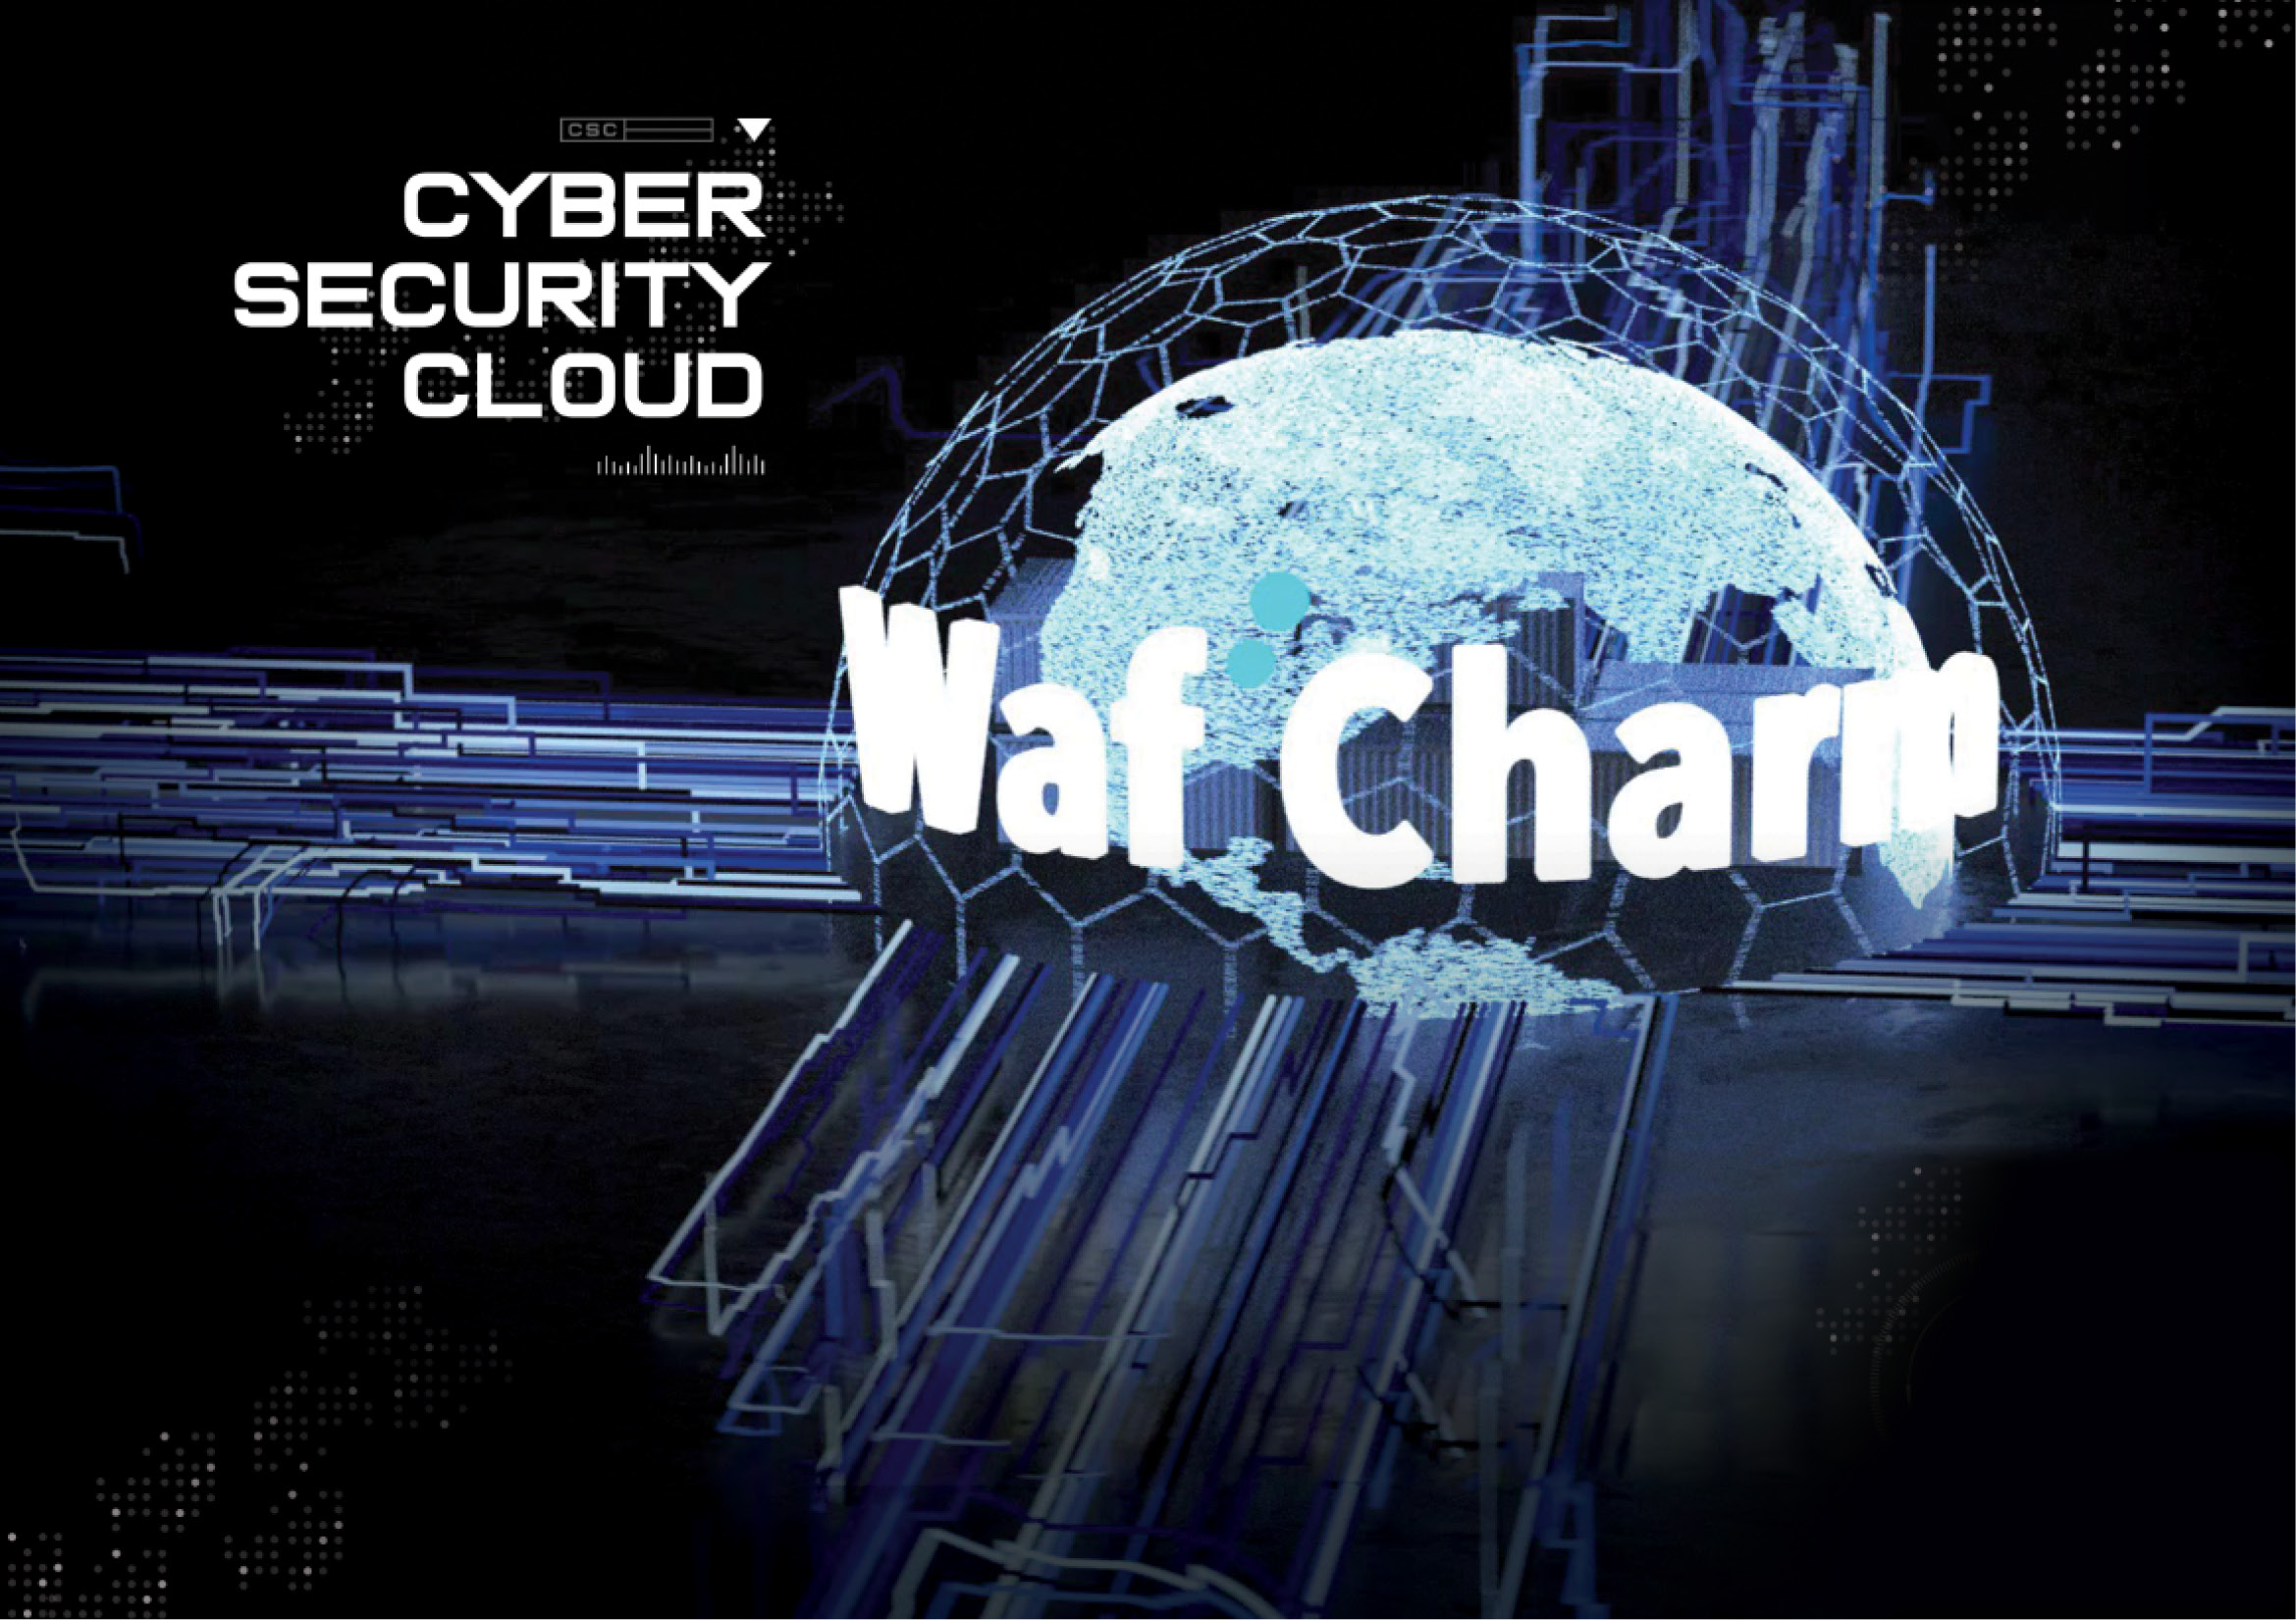 Cyber Security Cloud